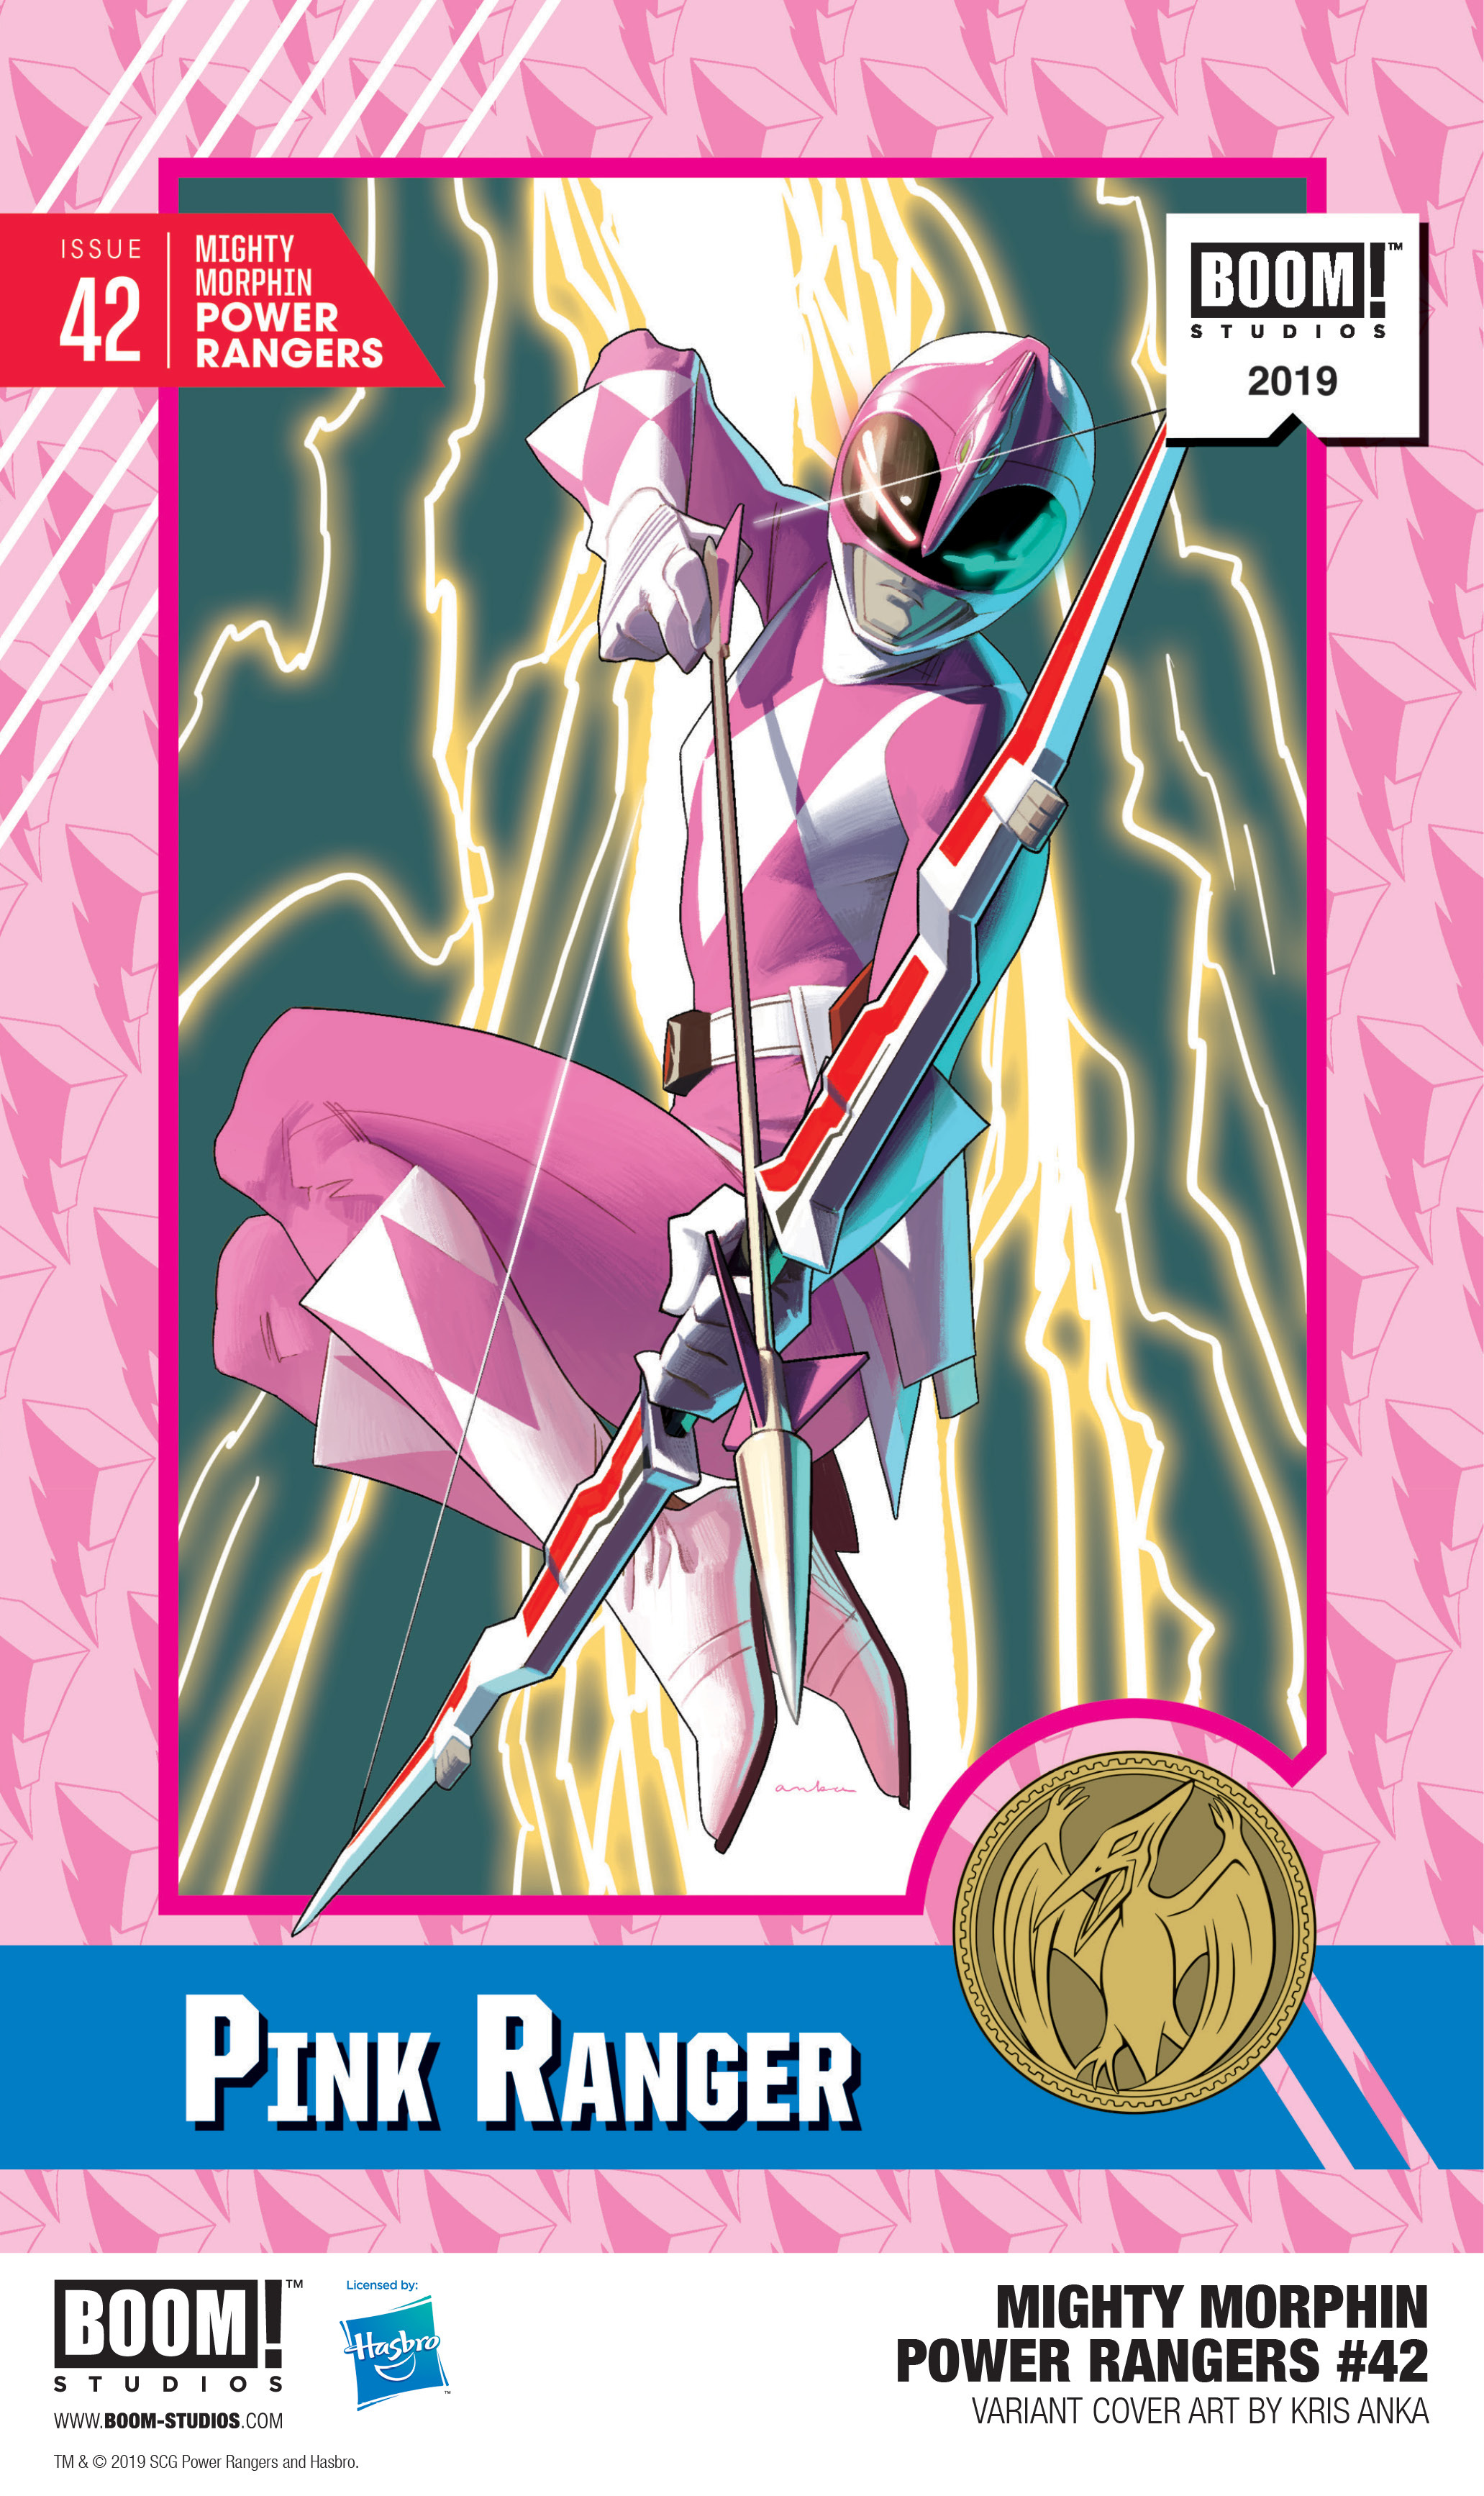 Mighty Morphin Power Rangers Trading Card variant